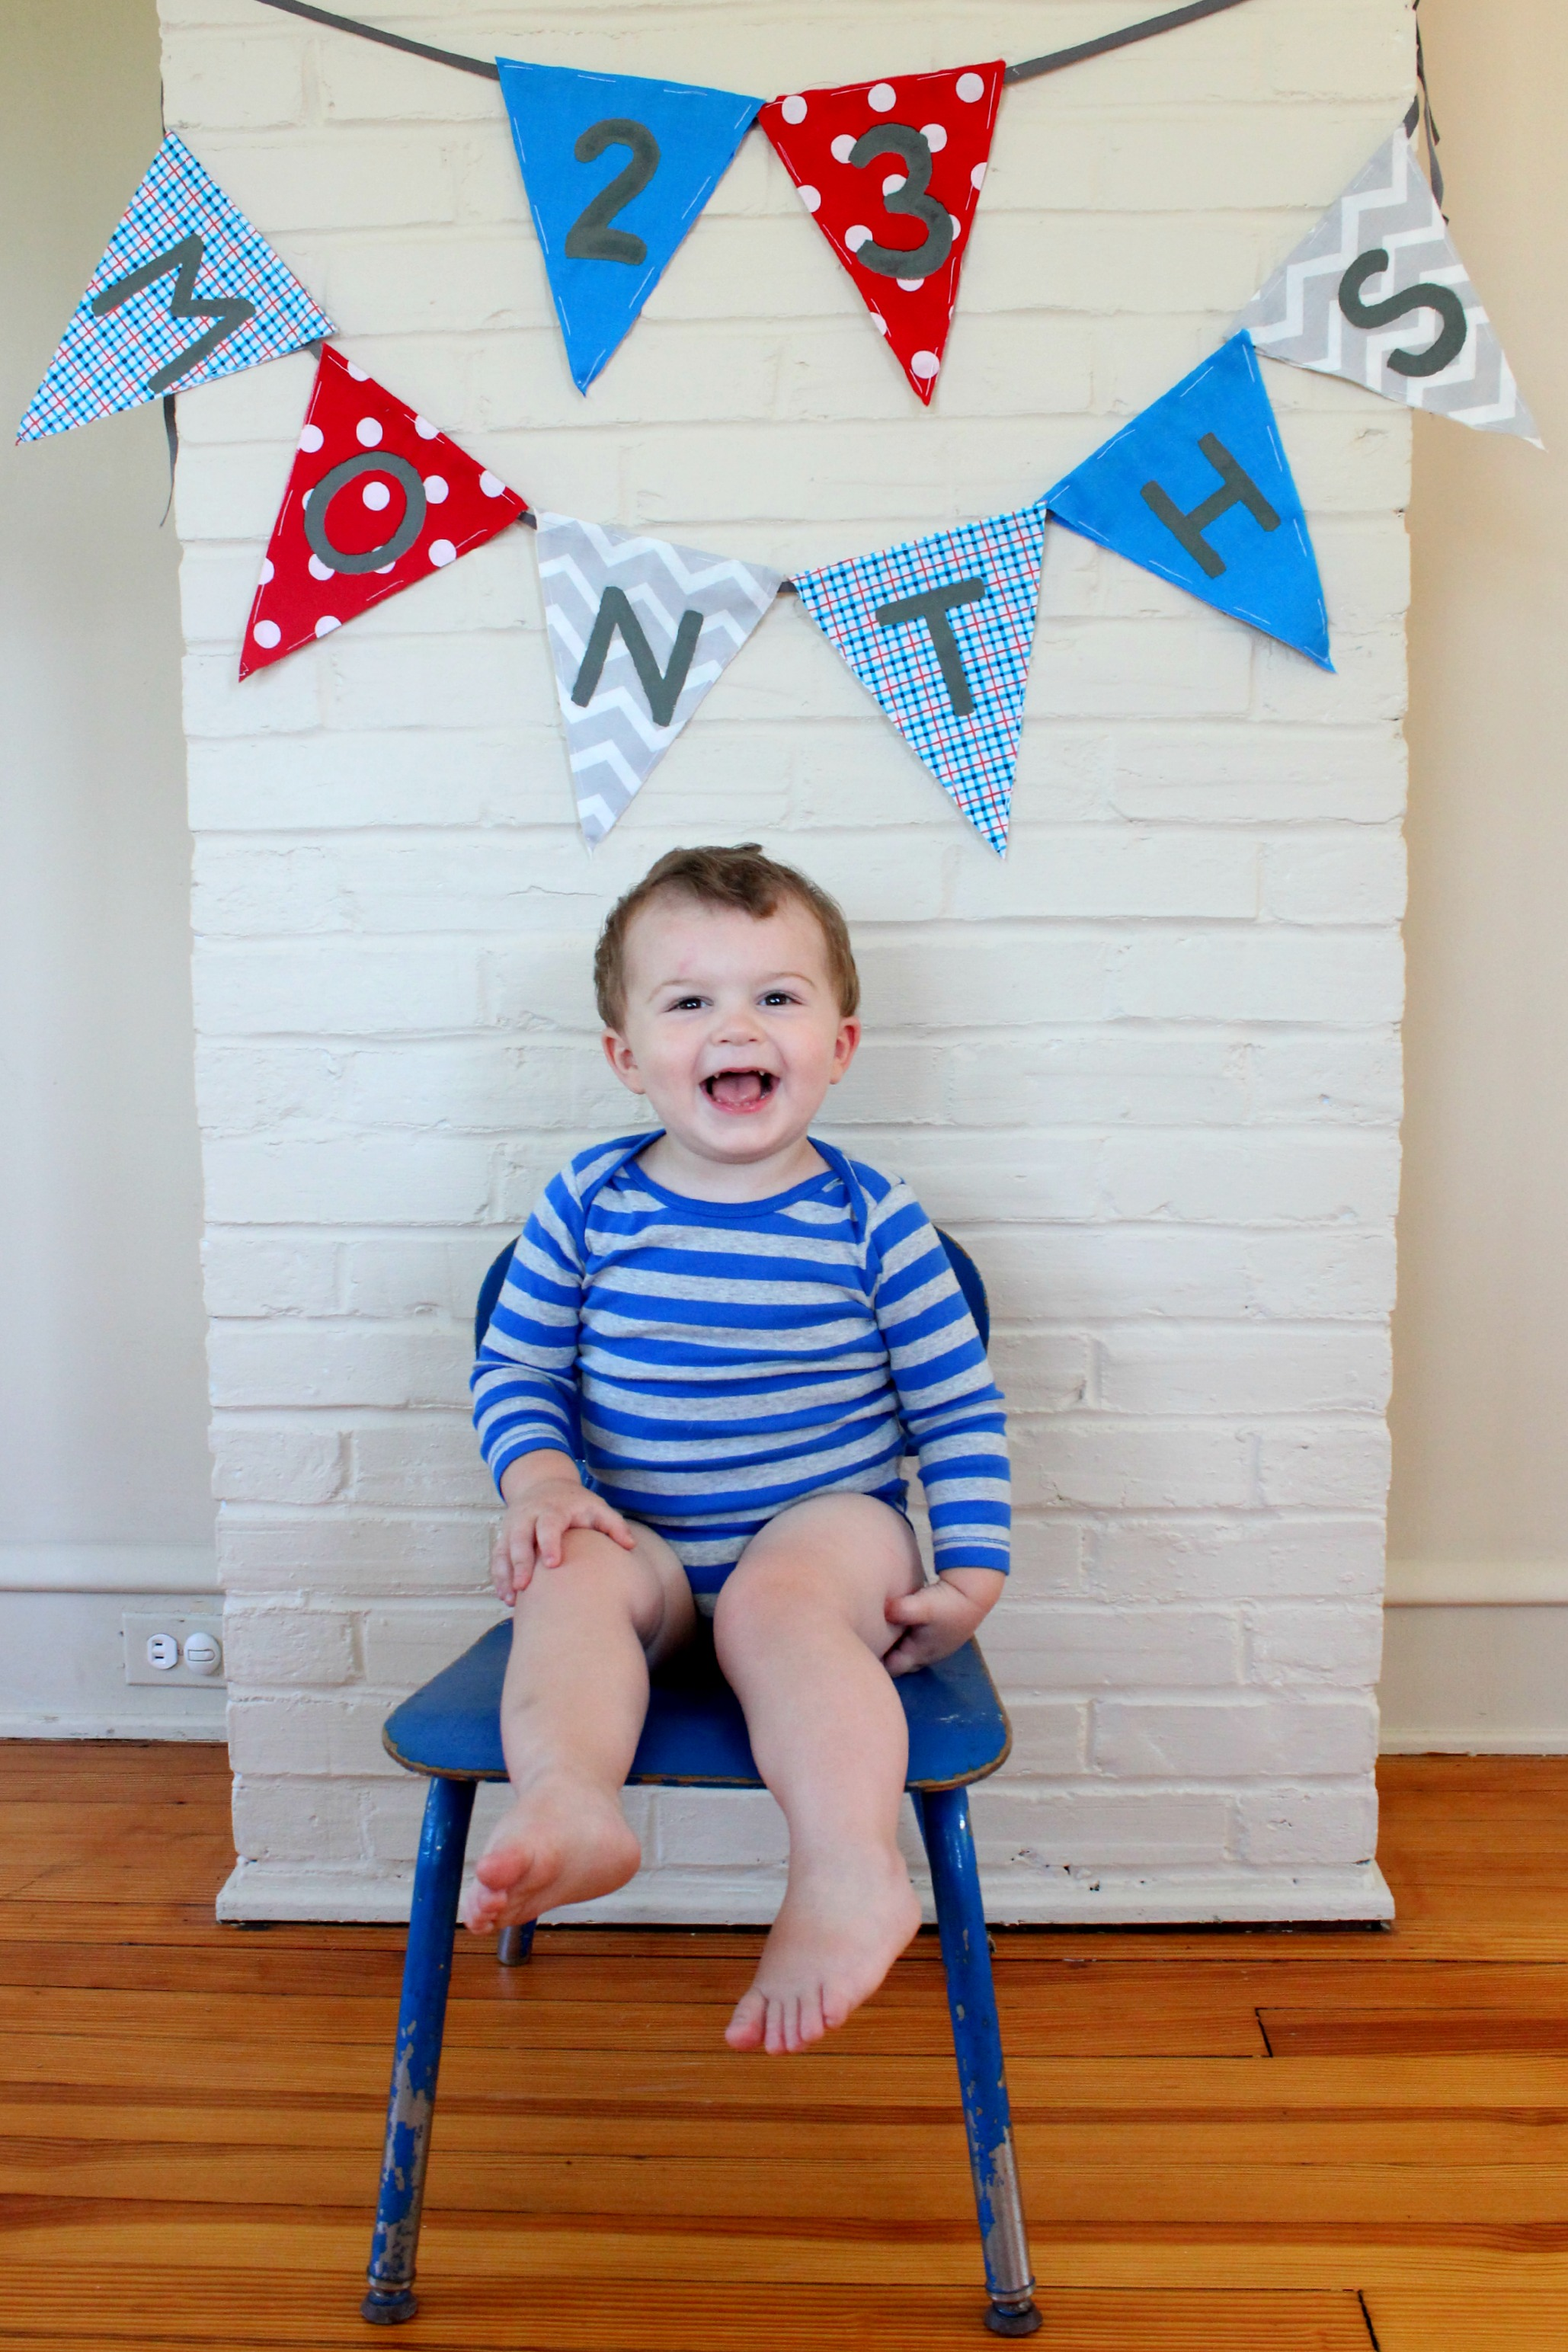 23 Months Old: Look Who's Almost Two!